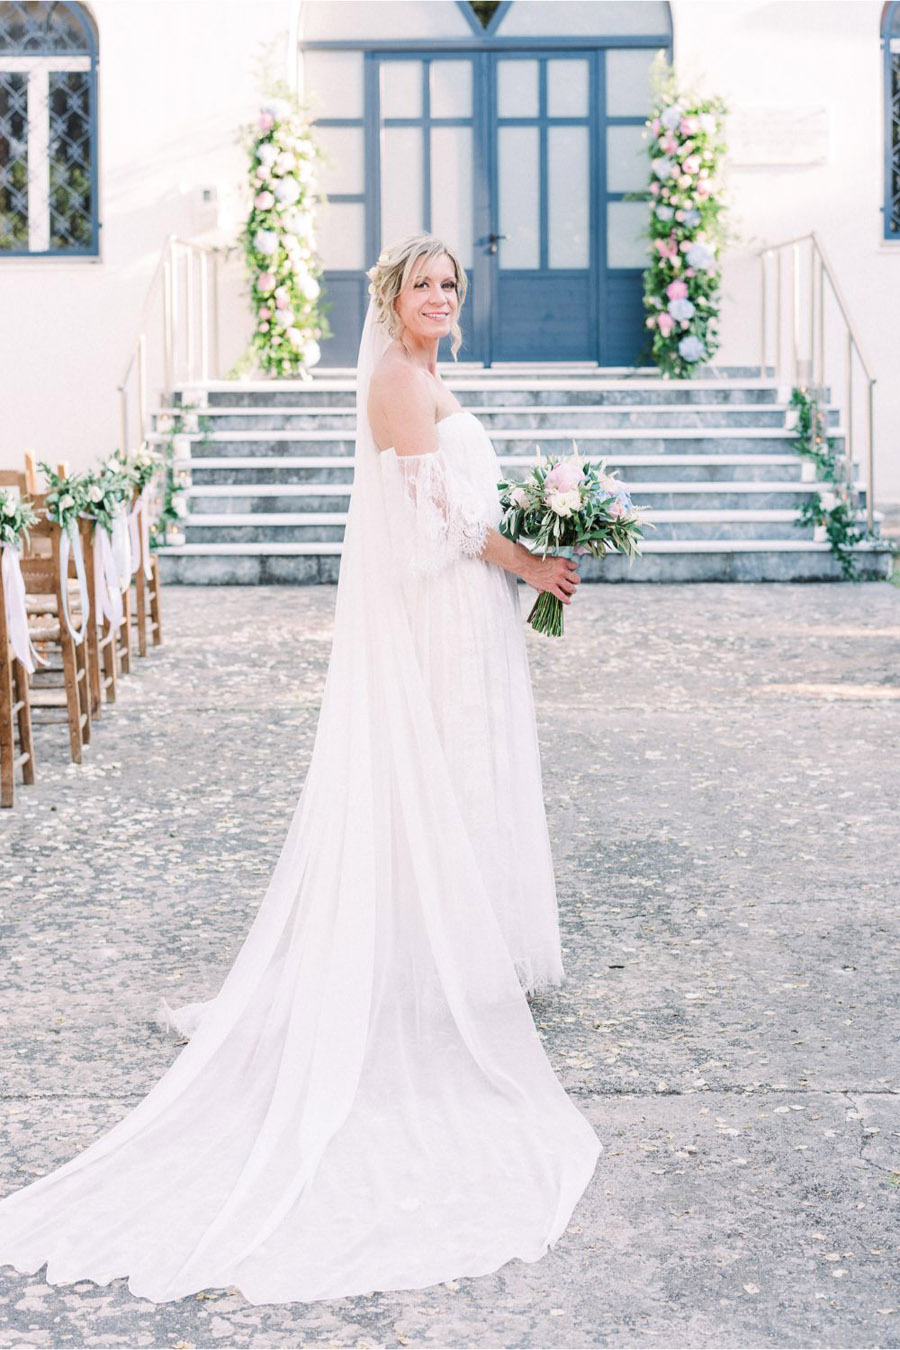 destination wedding in Crete with Crete For Love wedding planners (11)